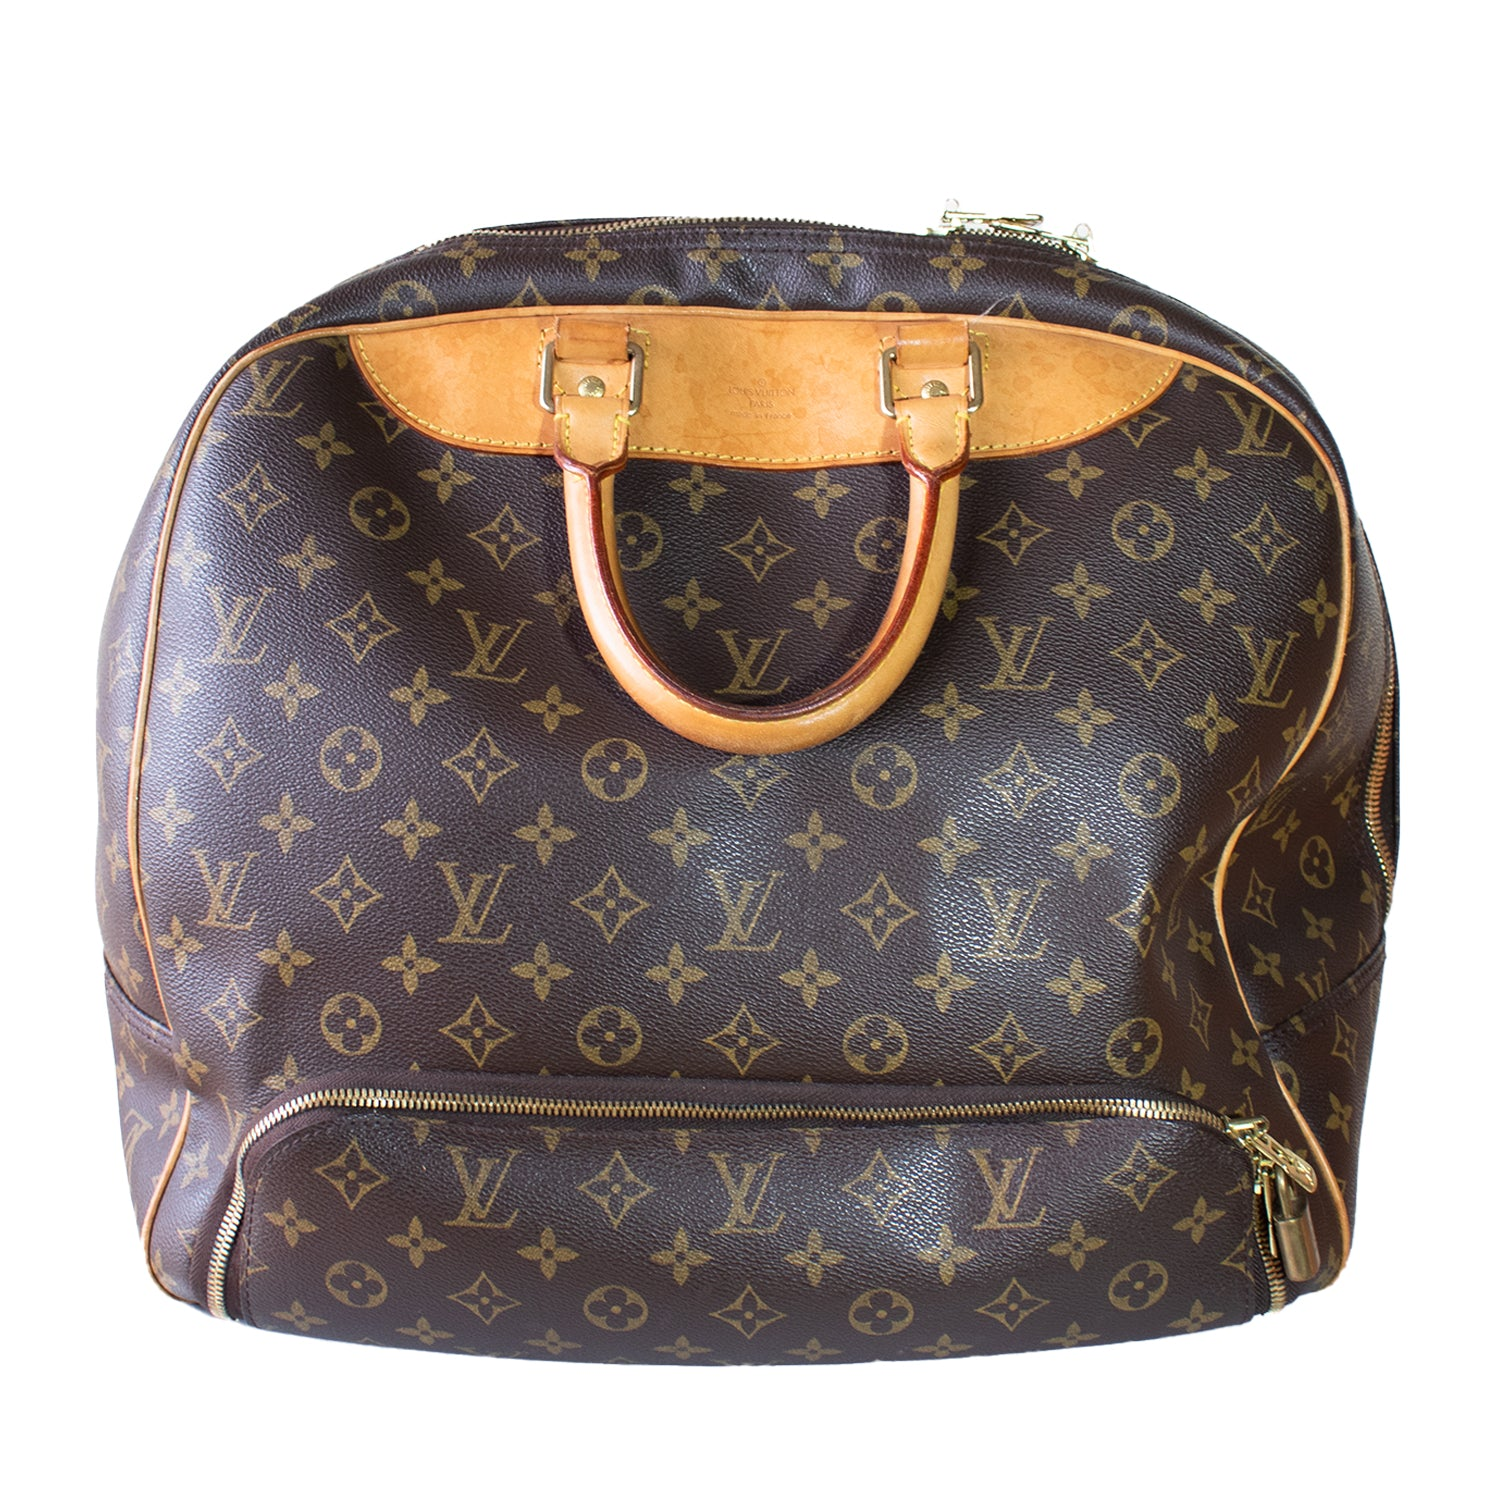 Mala Louis Vuitton